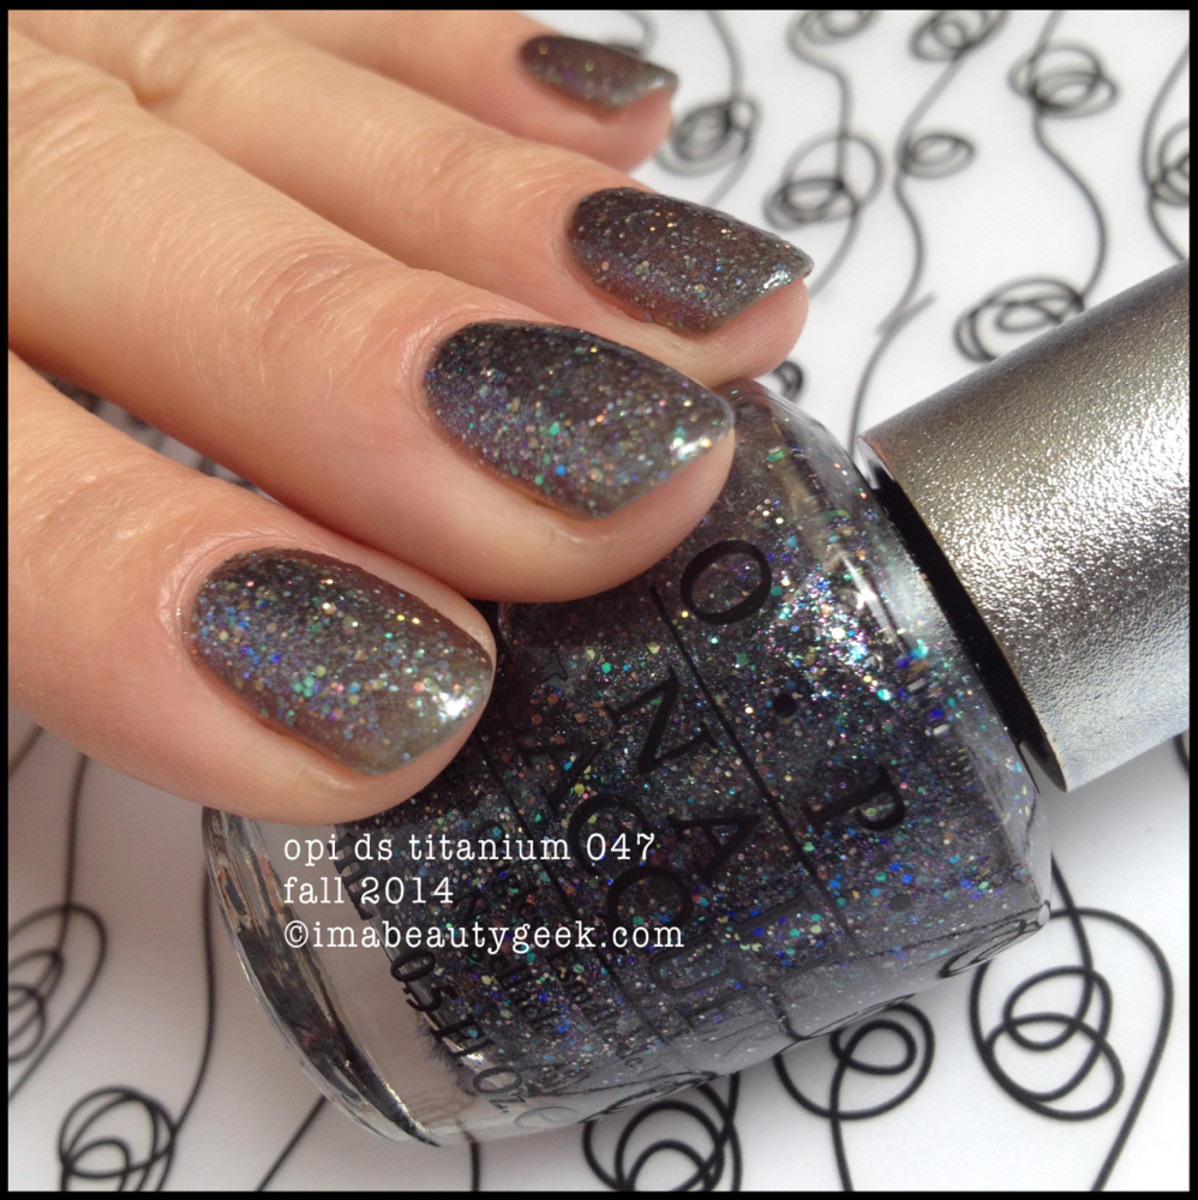 OPI DS Titanium 047 OPI Fall 2014 Beautygeeks